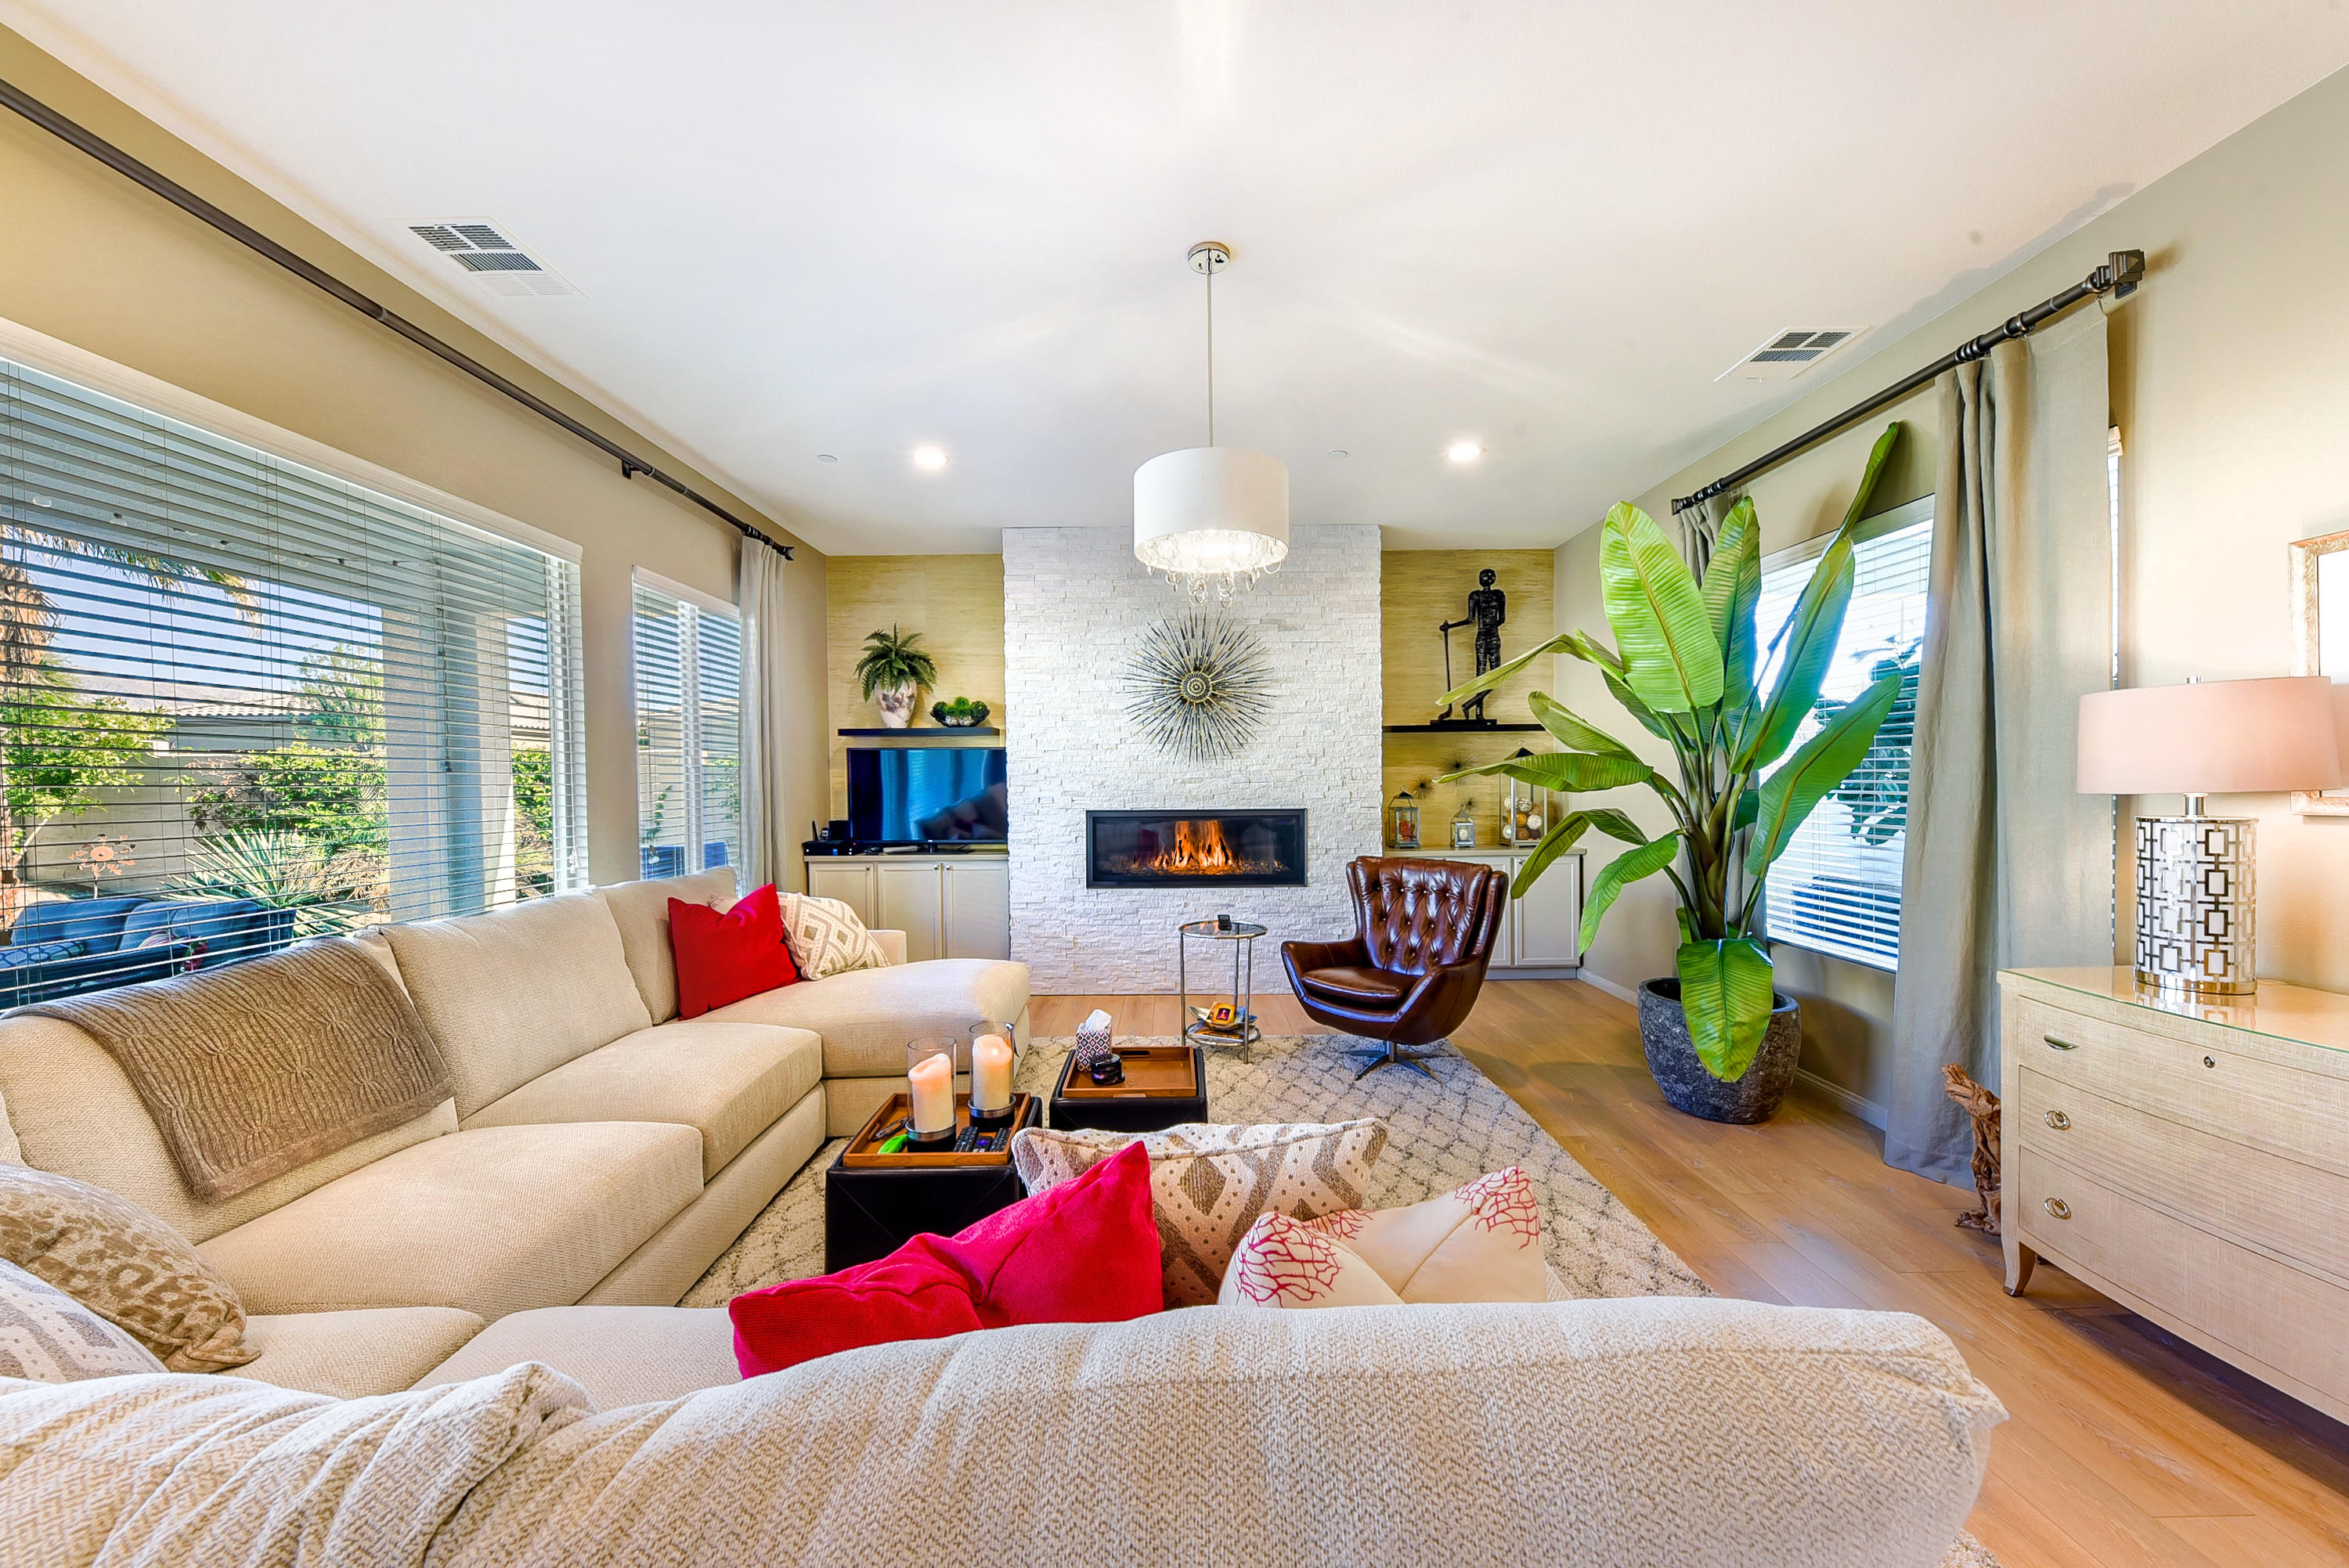 This Californian plan was built on a huge 9,148 SF privacy lot to 2789 SF (EST.) in 2012. It features three bedrooms, 4 baths, a large den, a retreat, a sauna and an attached 2 car garage with real A/C. The seller, who is a designer, purchased this home in March 2017 and promptly remodeled it into an incredible permanent winter home. Things have changed and now this like new 2021 modernized home is available. The carpet in the great room, den, 3 bedrooms and closets were replaced with a high quality German engineered wood laminate flooring that carries a 35 year warranty. The beautiful floors look and feel like real wood yet they are even better. A rectangular modern gas fireplace was placed in the center of the great room where it was enclosed, floor to ceiling, in a white stack stone surround. Custom cabinets were installed on either side to finish the room. Enhancements include a cut glass entry door, extensive use of accent wall cover, the entire home & all doors painted, pendent lights added, a new kitchen back splash, upscale light fixtures, window cover, ceiling fans: all blended with loving care and an enormous expense to a gorgeous totally finished look and feel. Everything perfect to please the most discriminating buyer who appreciates quality and loves perfection!